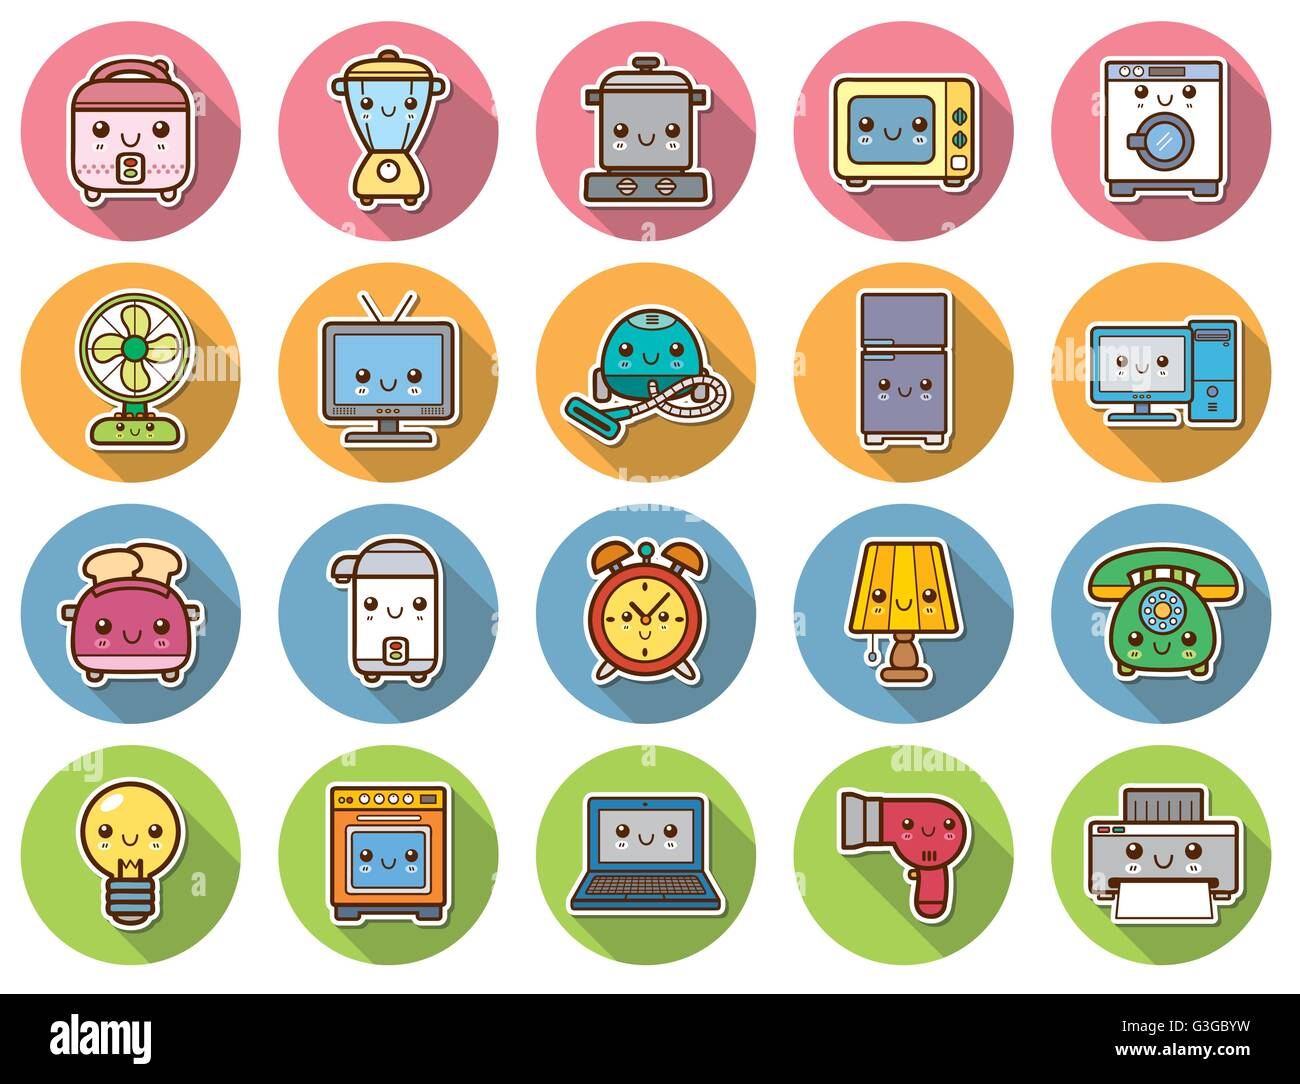 Vector Illustration of Home appliances and electronics - Stock Image